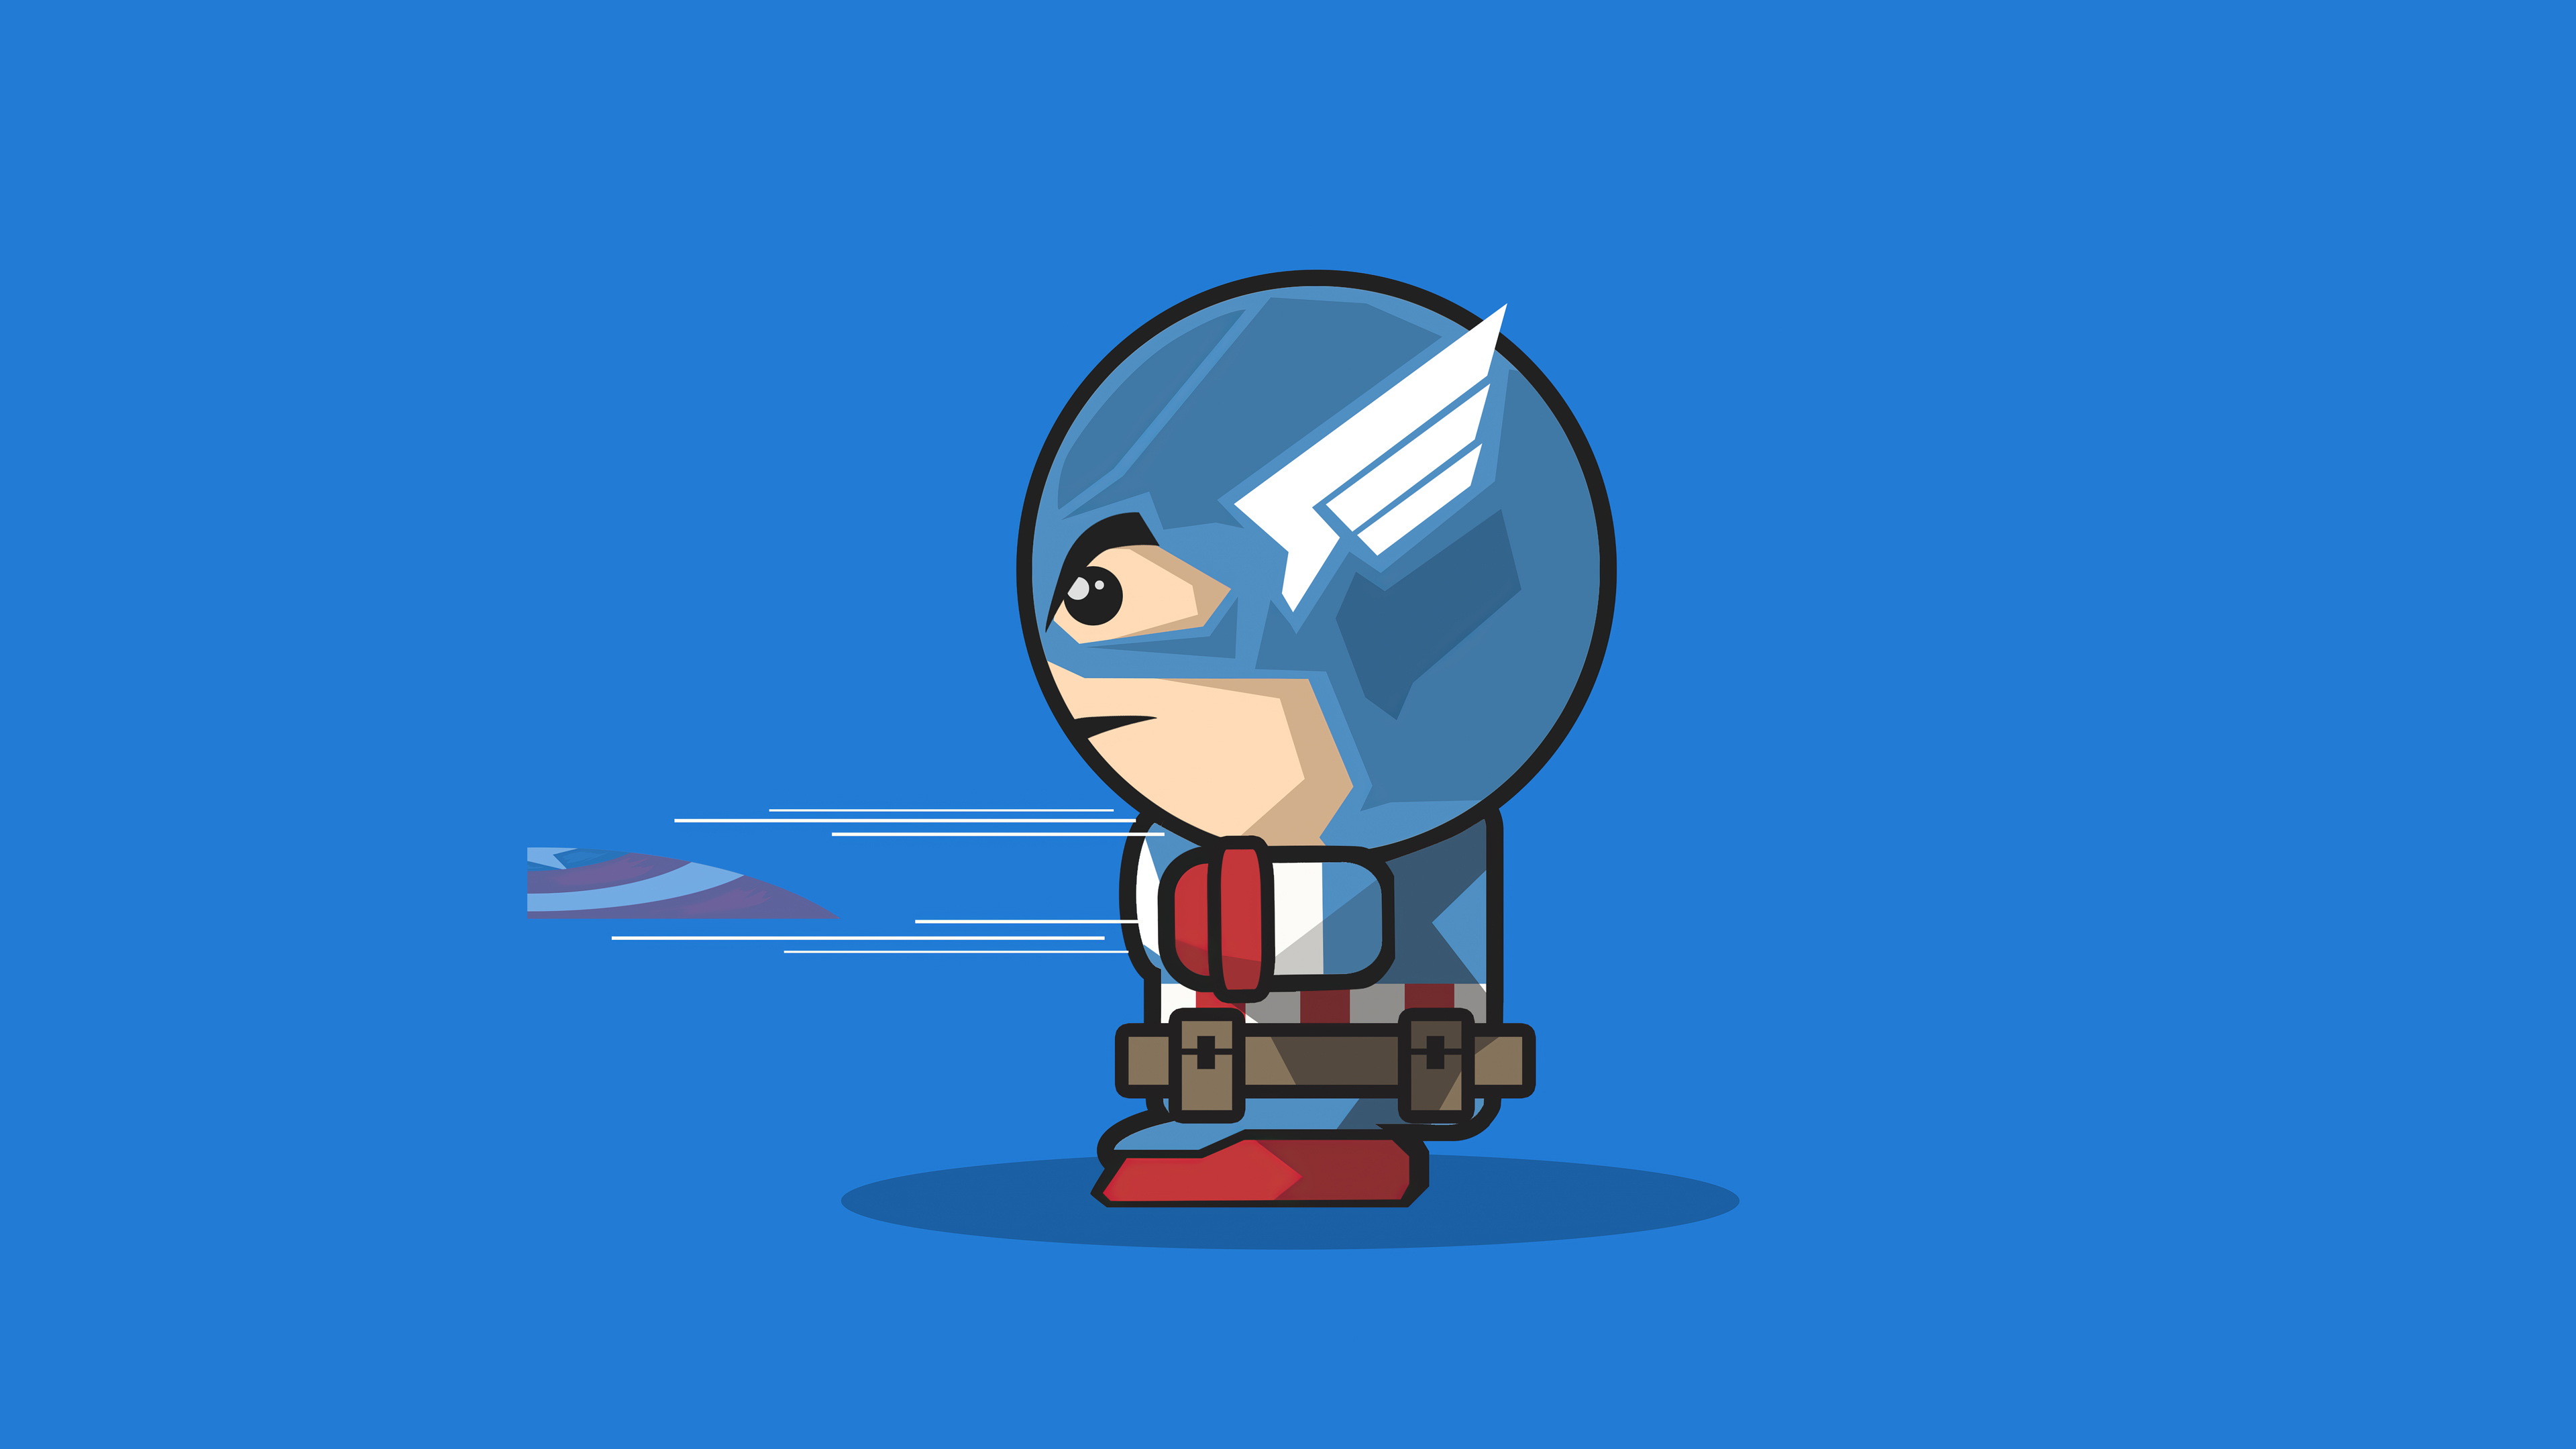 Captain America Cartoon Minimal Art 4k Hd Superheroes 4k